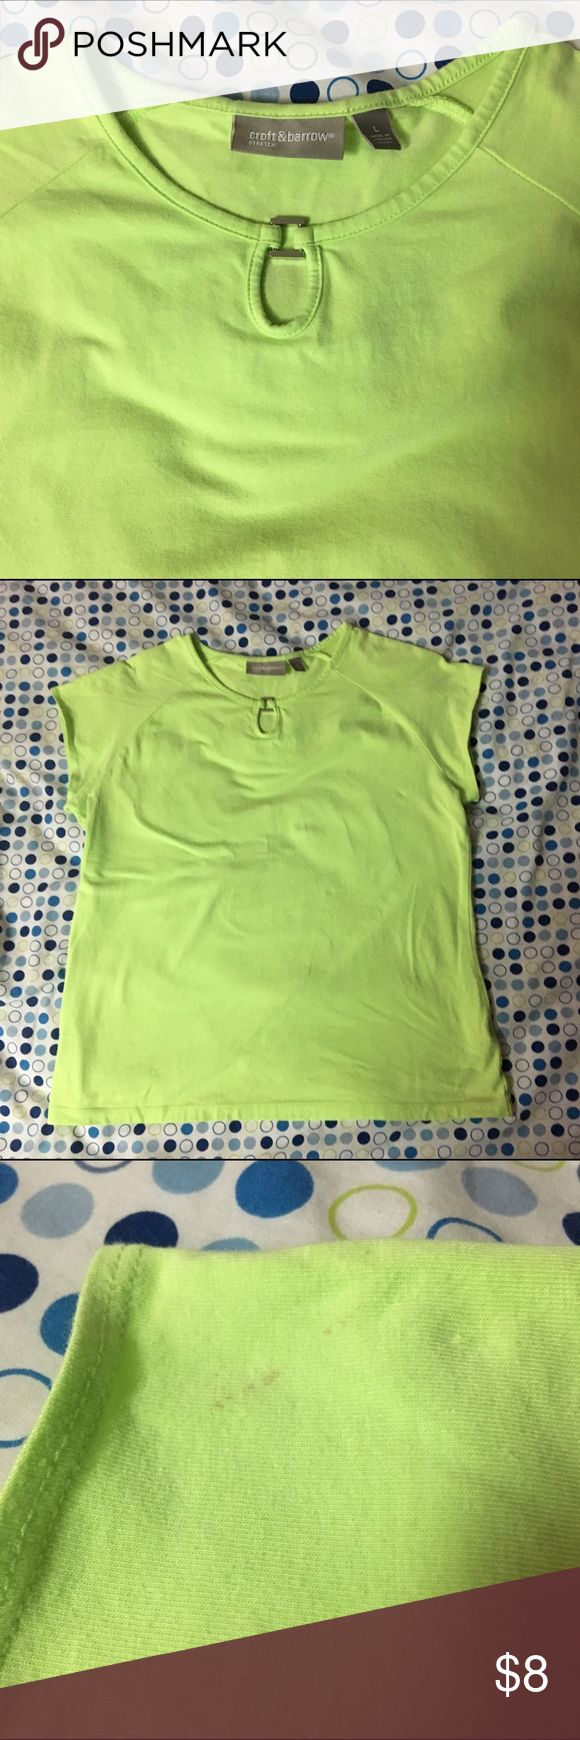 Lime Green Croft and Barrow Tee This lime green Croft and barrow stretch tee shirt is in good shape. It is very soft. It has two small stains. One is on the shoulder and the other is on the back on the bottom both pictured. Still a lot of life left in it. croft & barrow Tops Tees - Short Sleeve